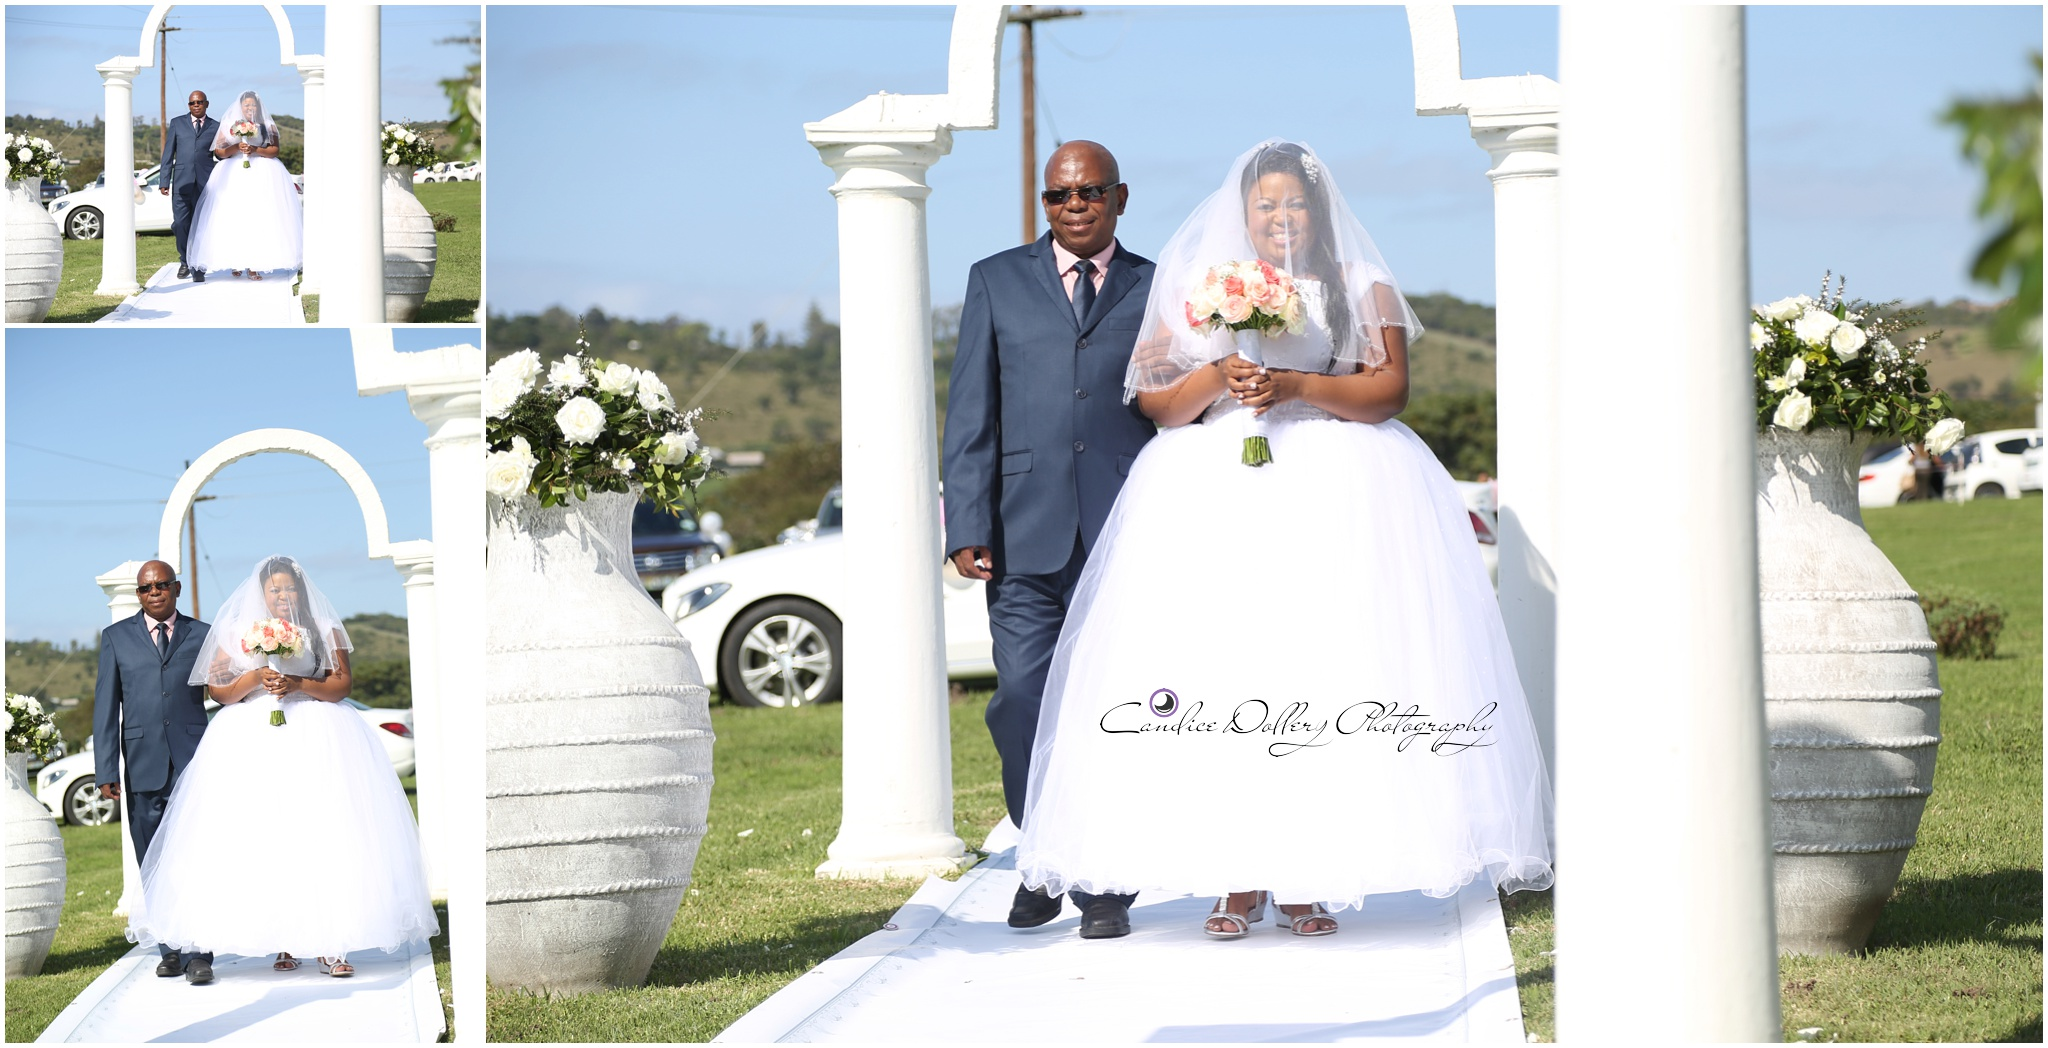 Wedding Gonubie Manor Thola & Phili-Candice Dollery Photograhy_4203